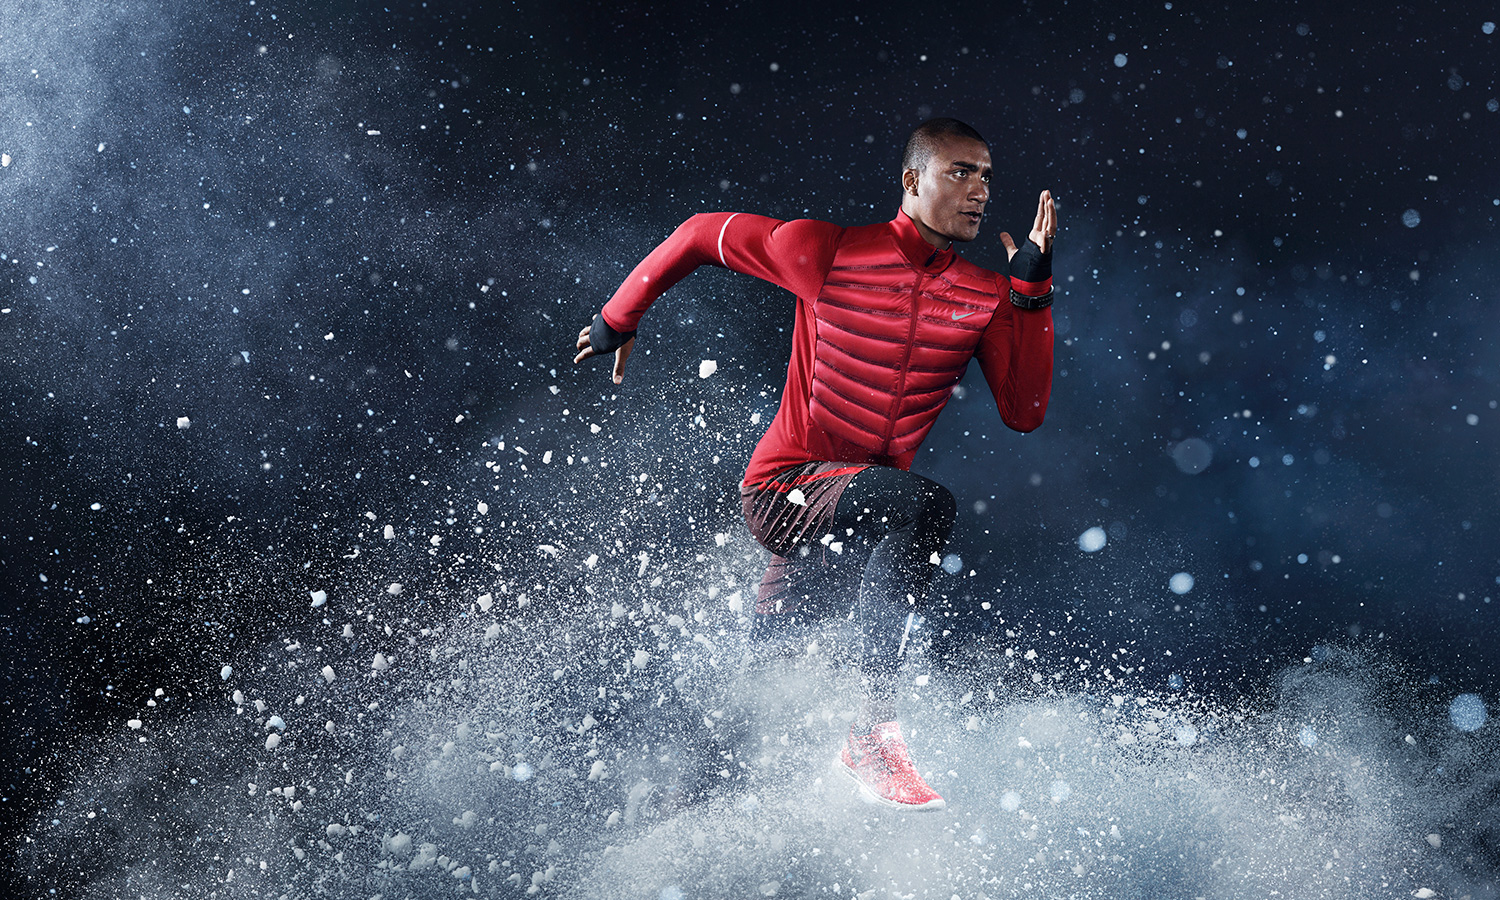 Running with nike